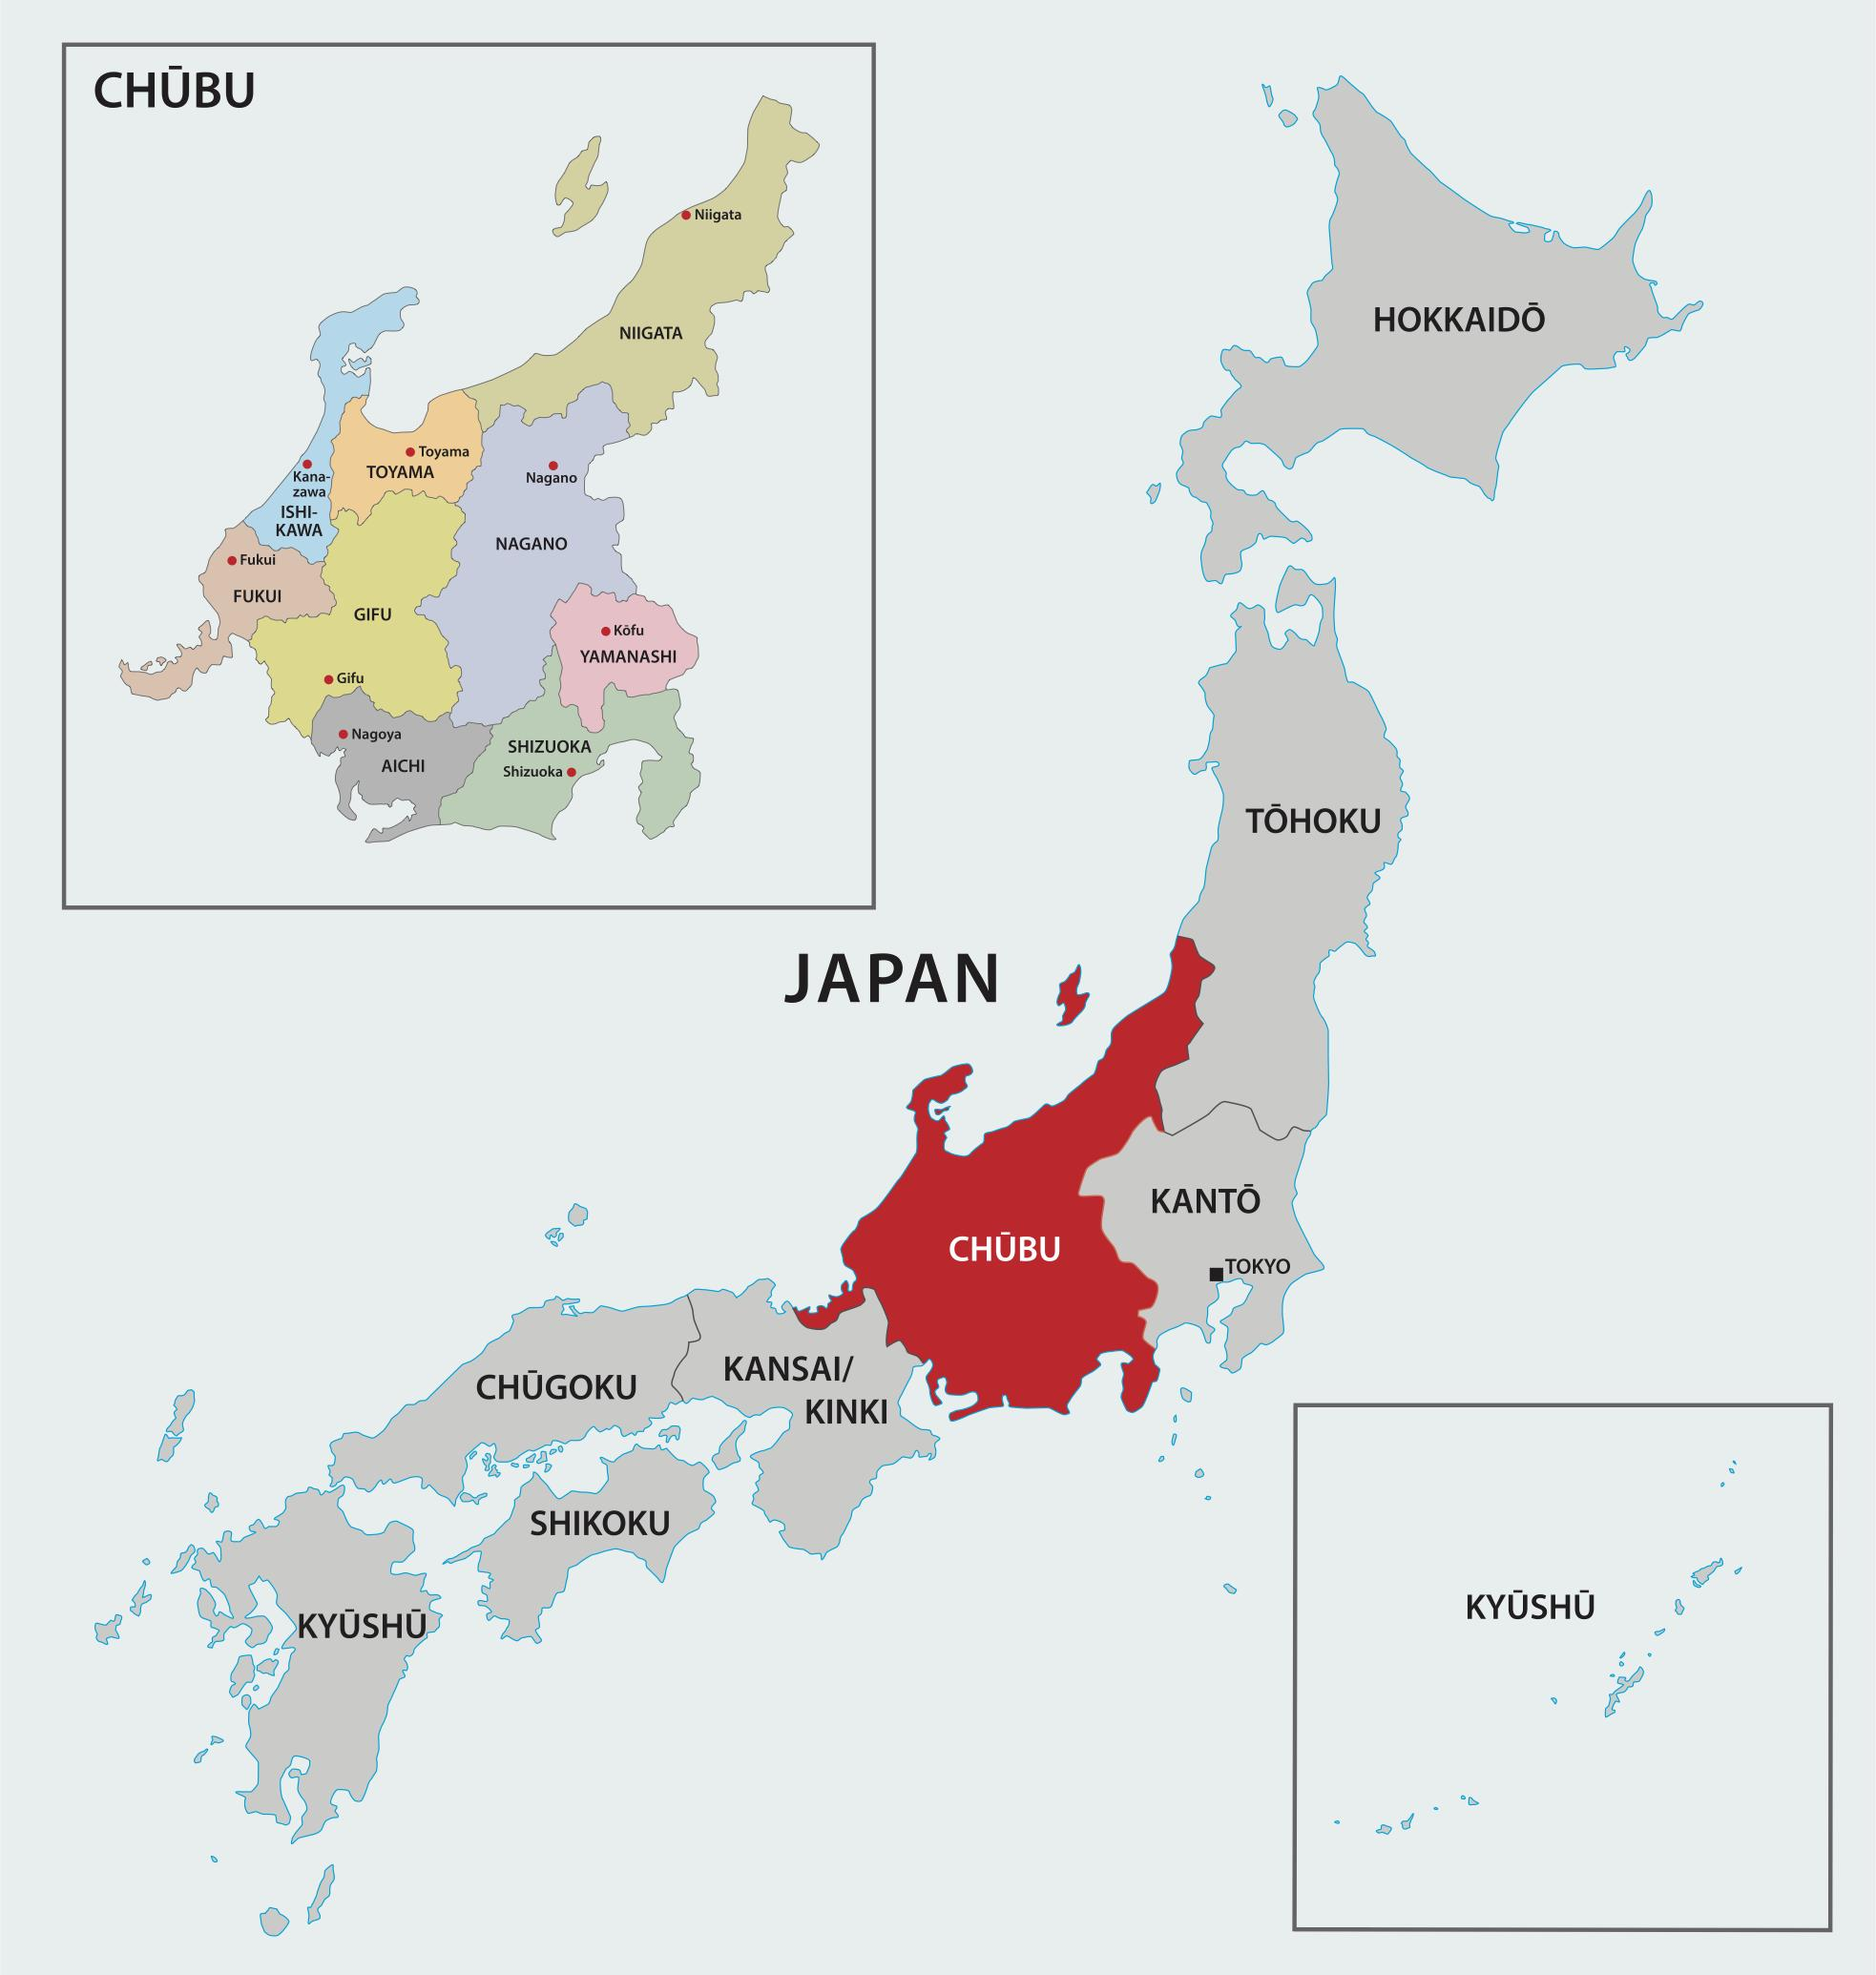 Map of Chubu region, Japan, including prefectures